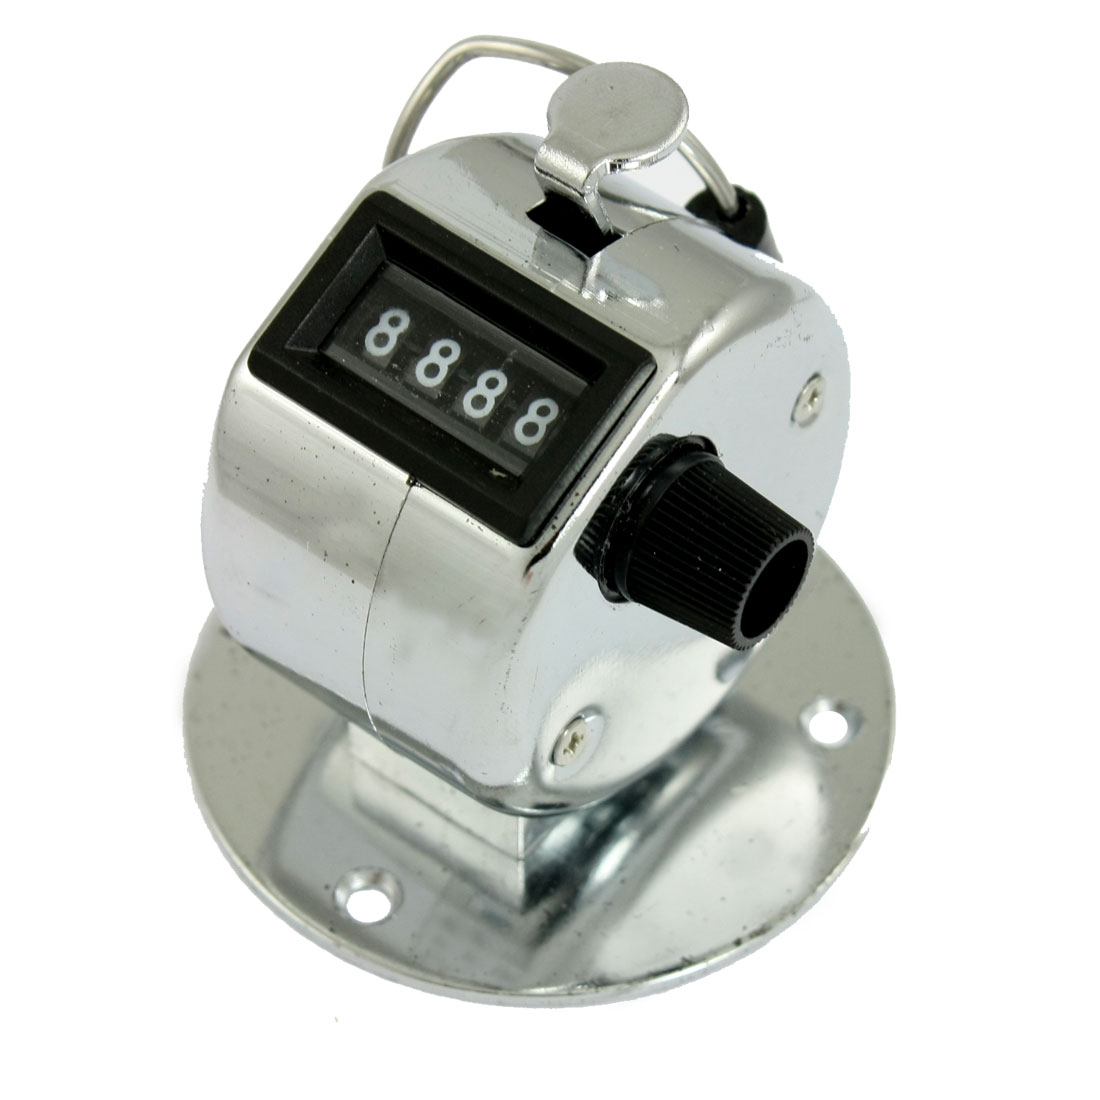 Metal 4 Digits Number Clicker Hand Tally Counter for Golf Sport